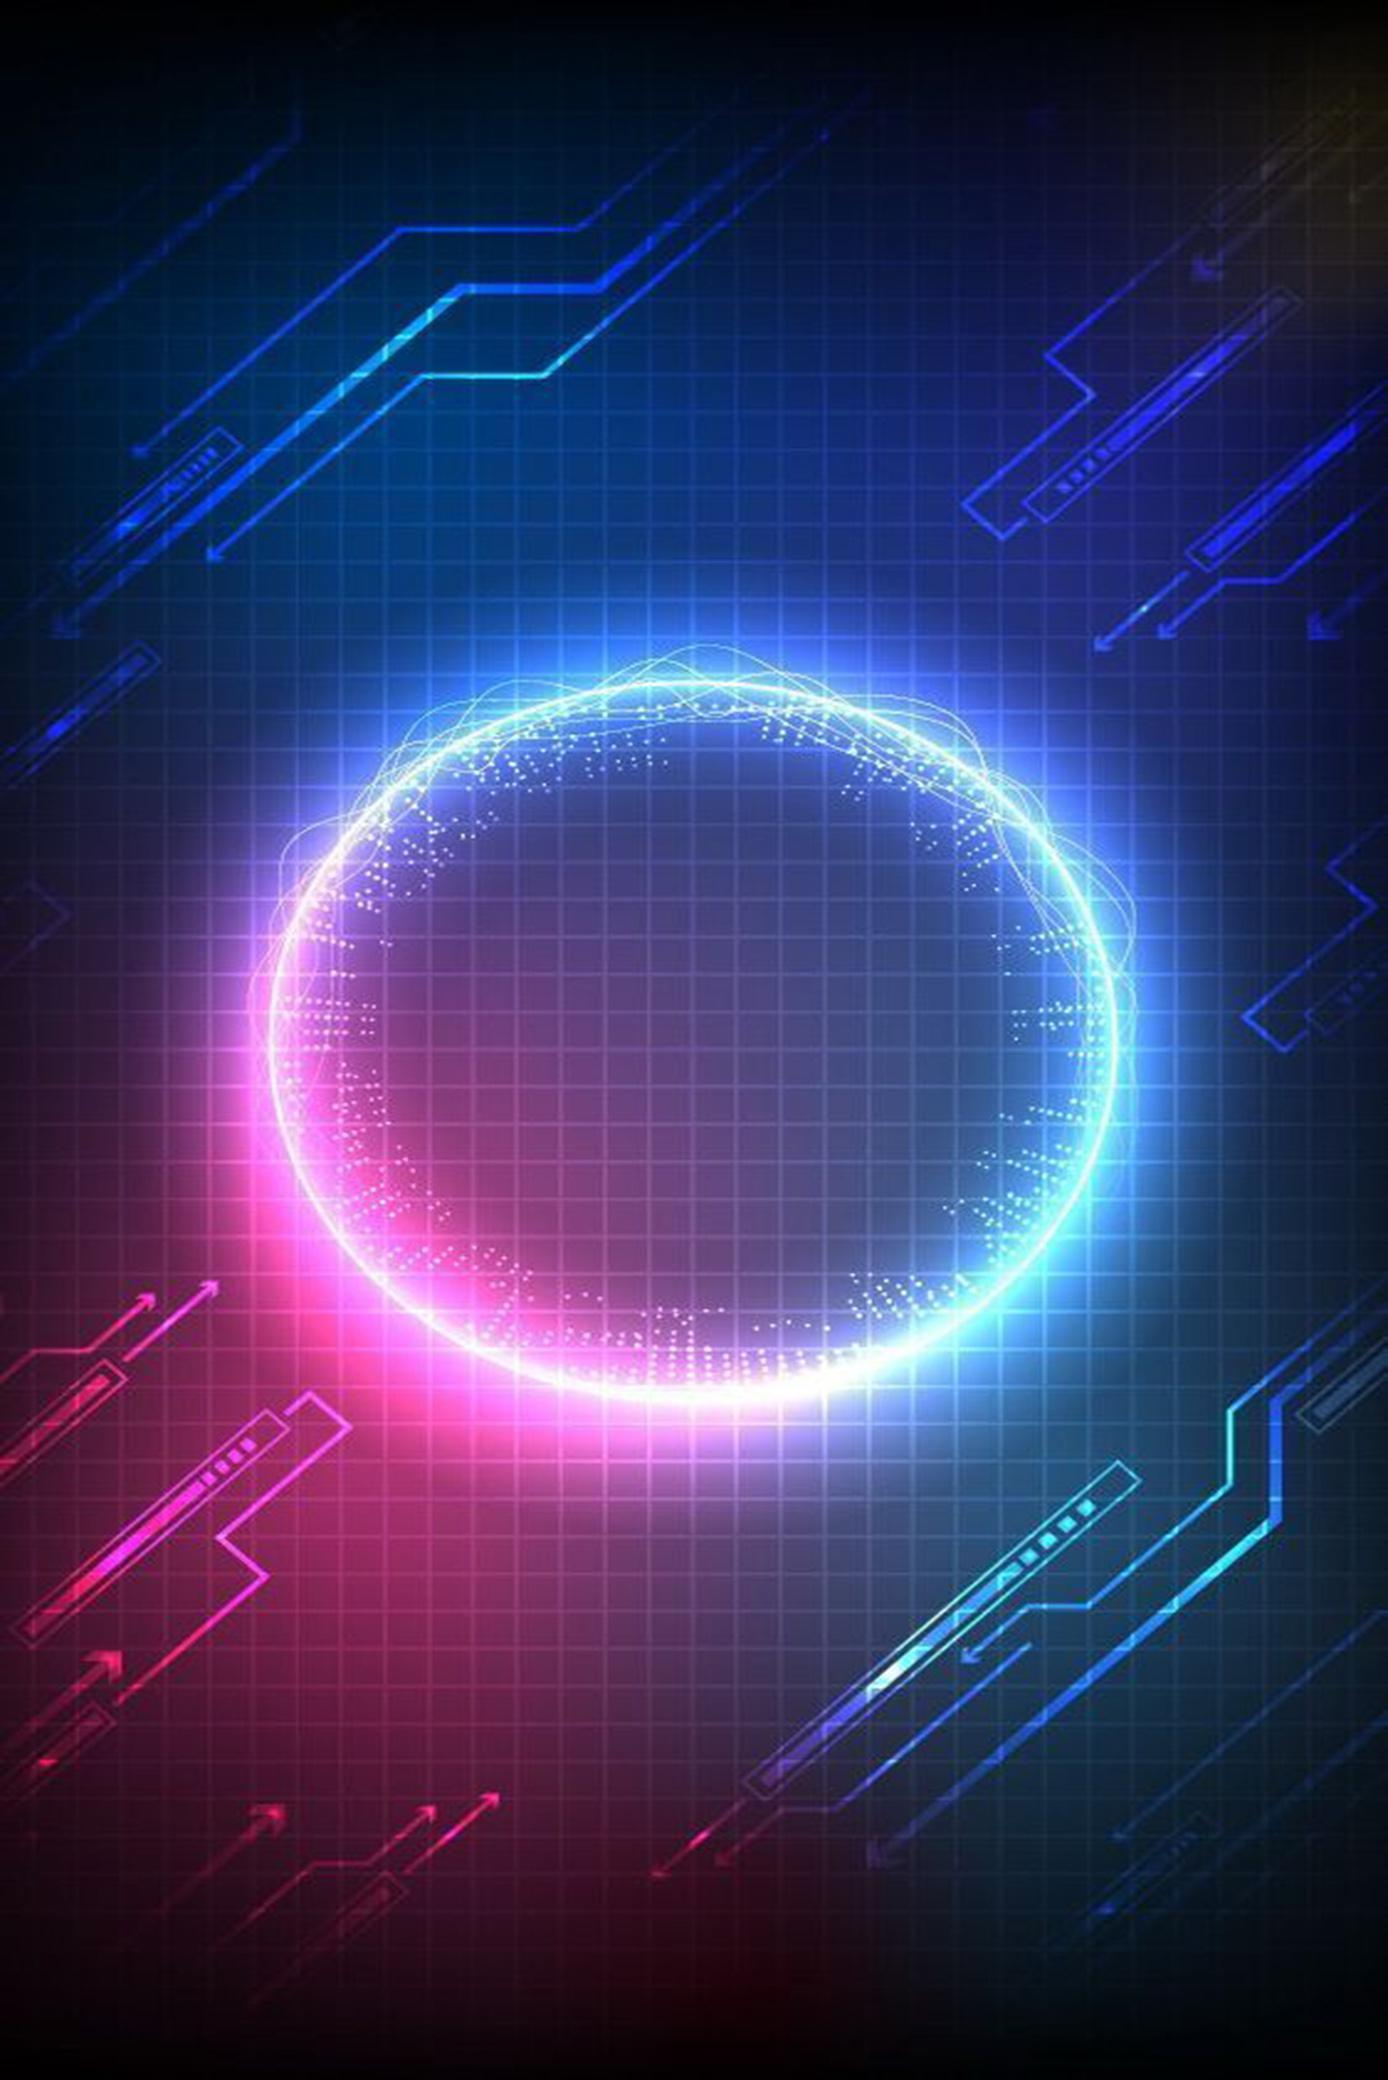 4k Wallpapers Ultra Neon For Android Apk Download